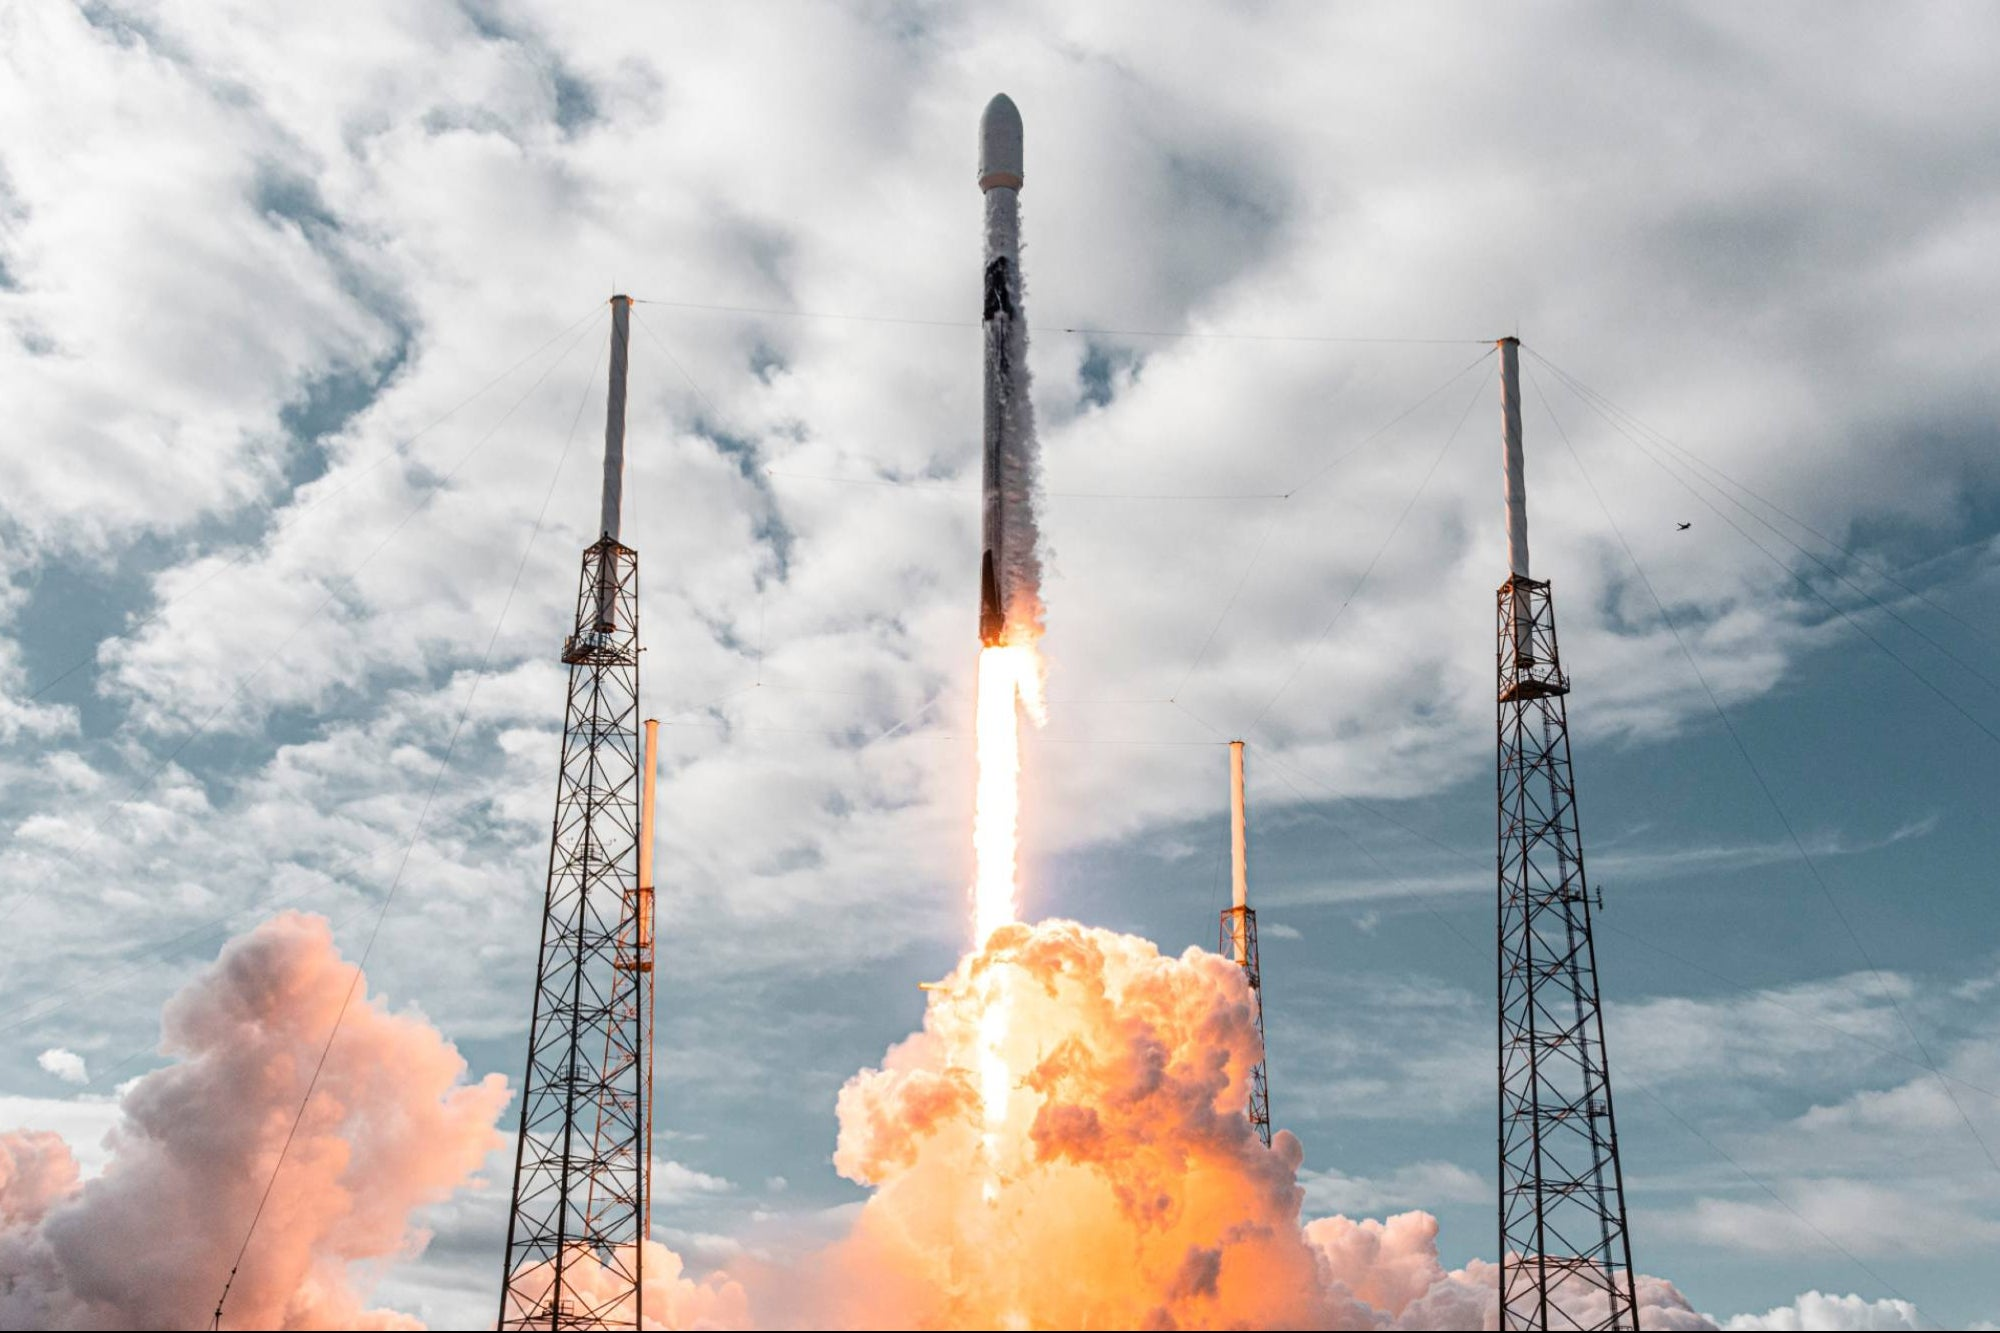 SpaceX Launches 143 Satellites on a Single Rocket, Breaks Record